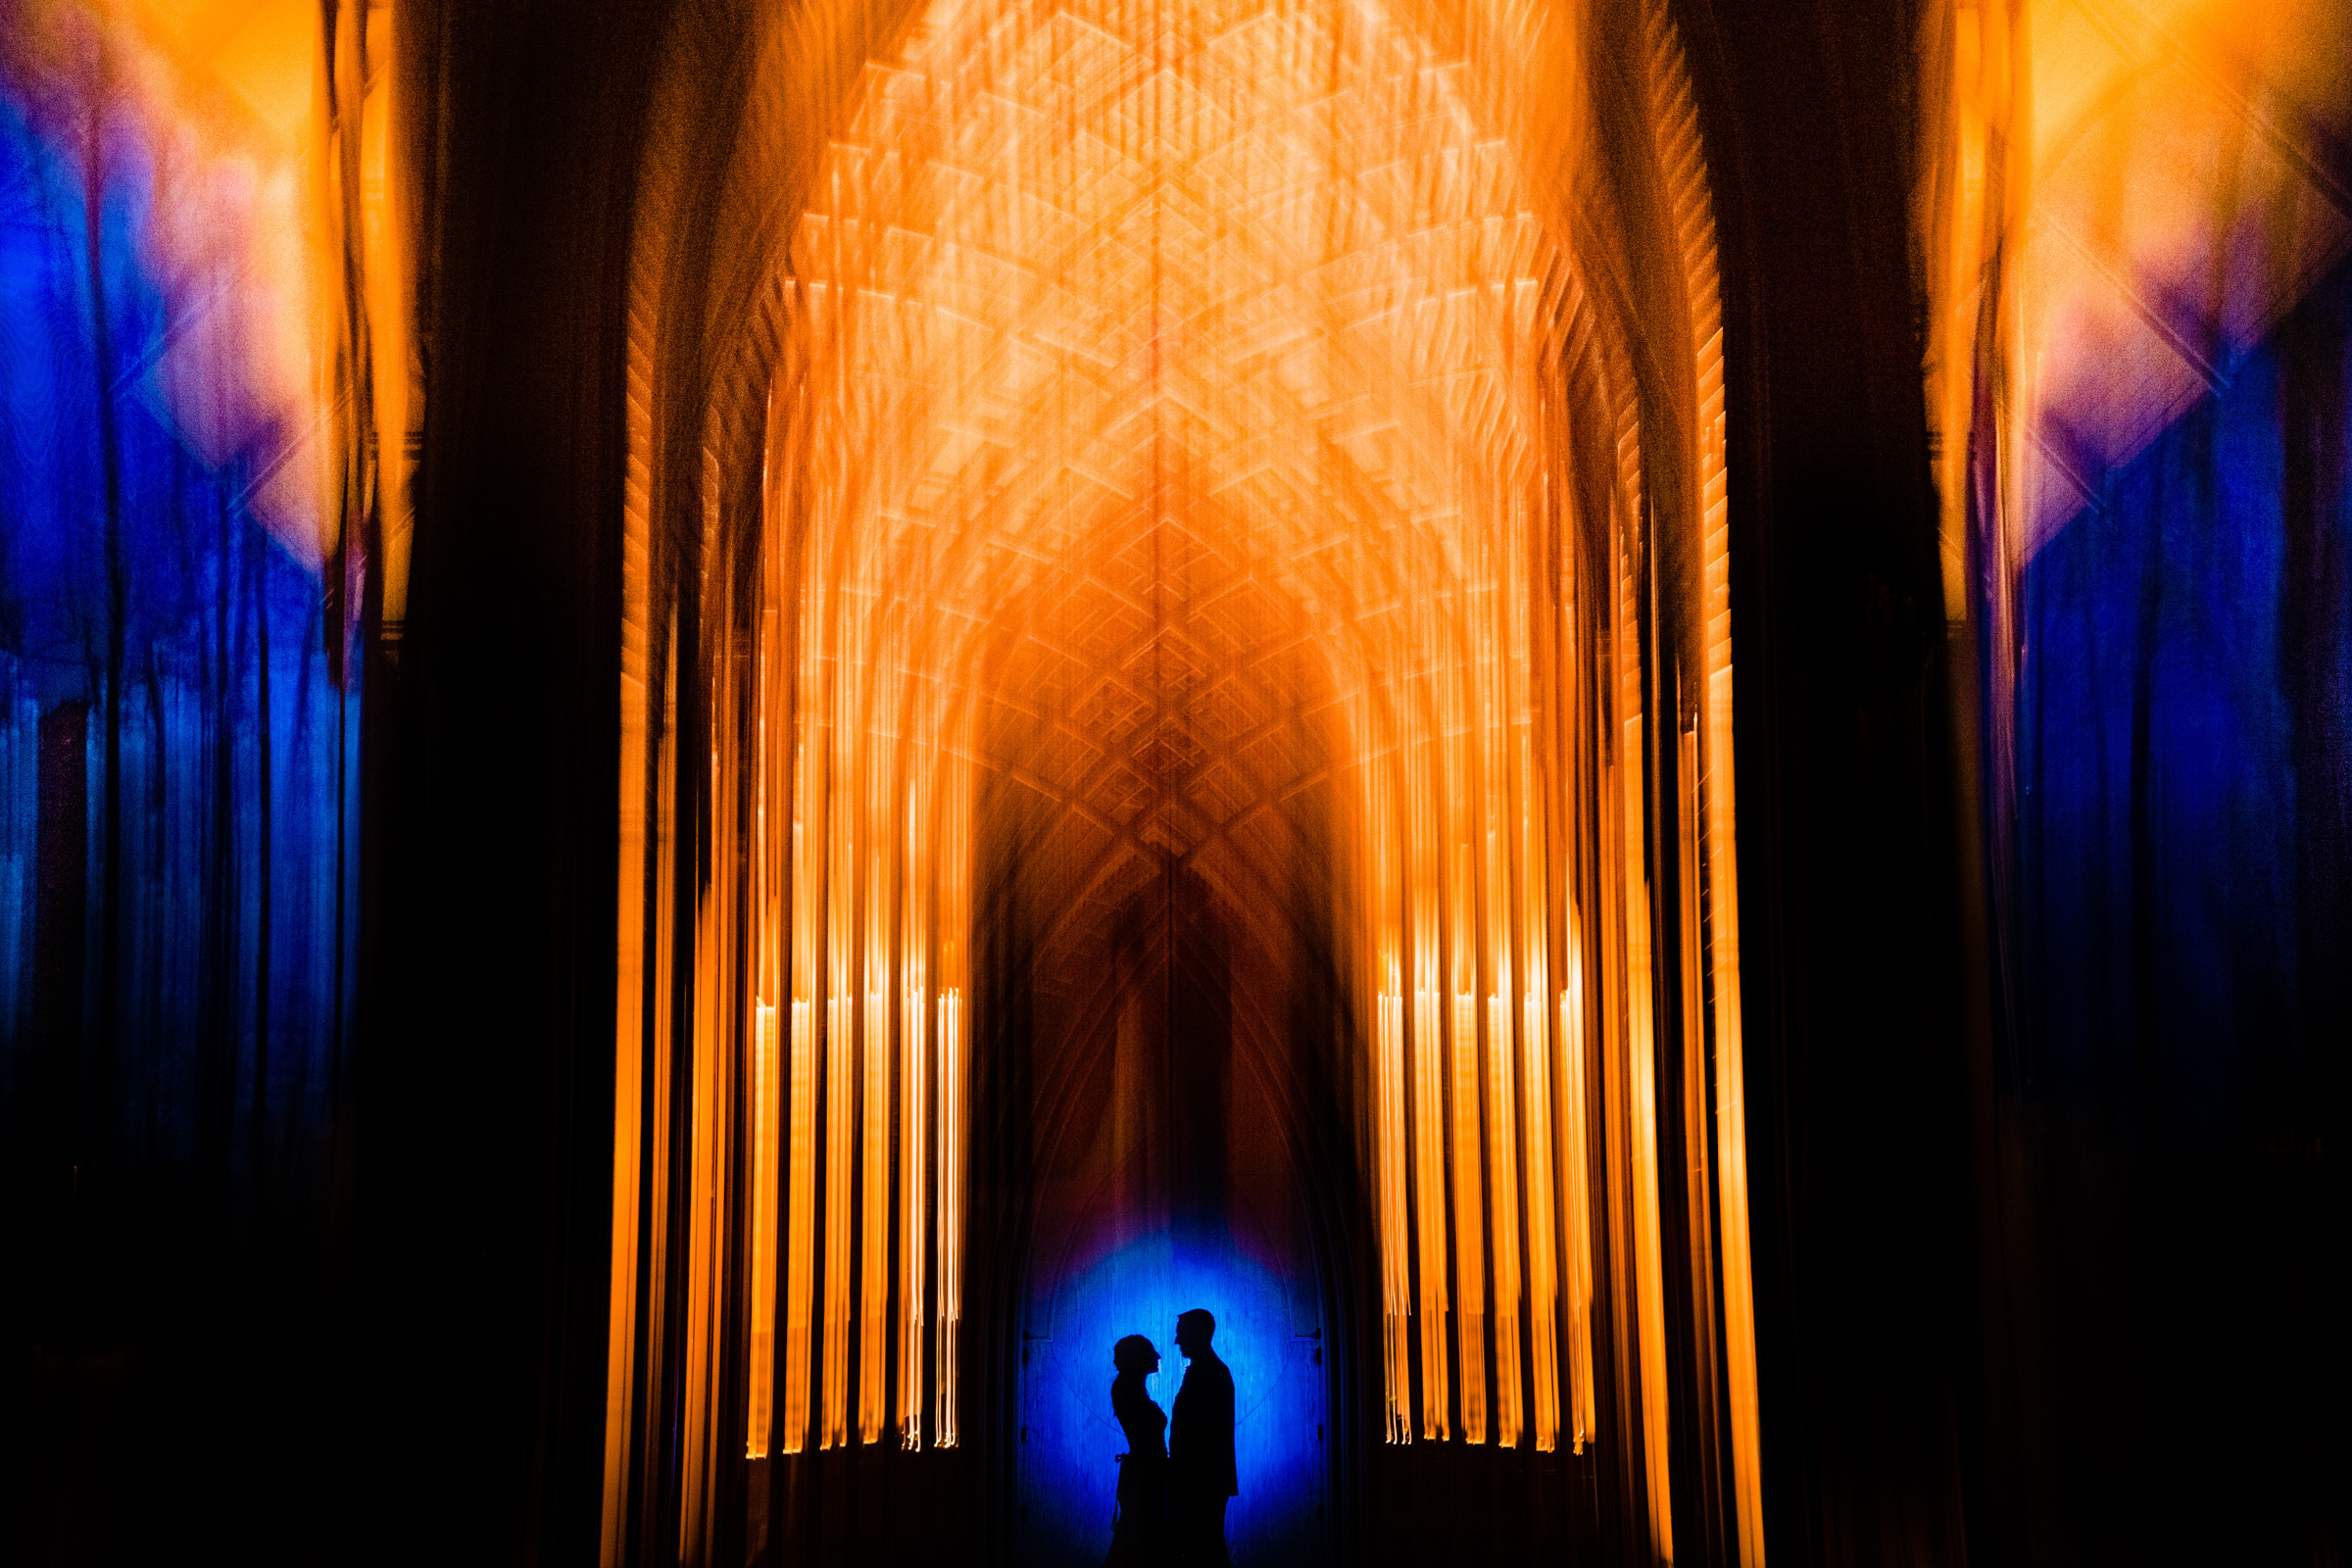 50 best wedding photo concepts - silhouette against golden arches by Vinson Images